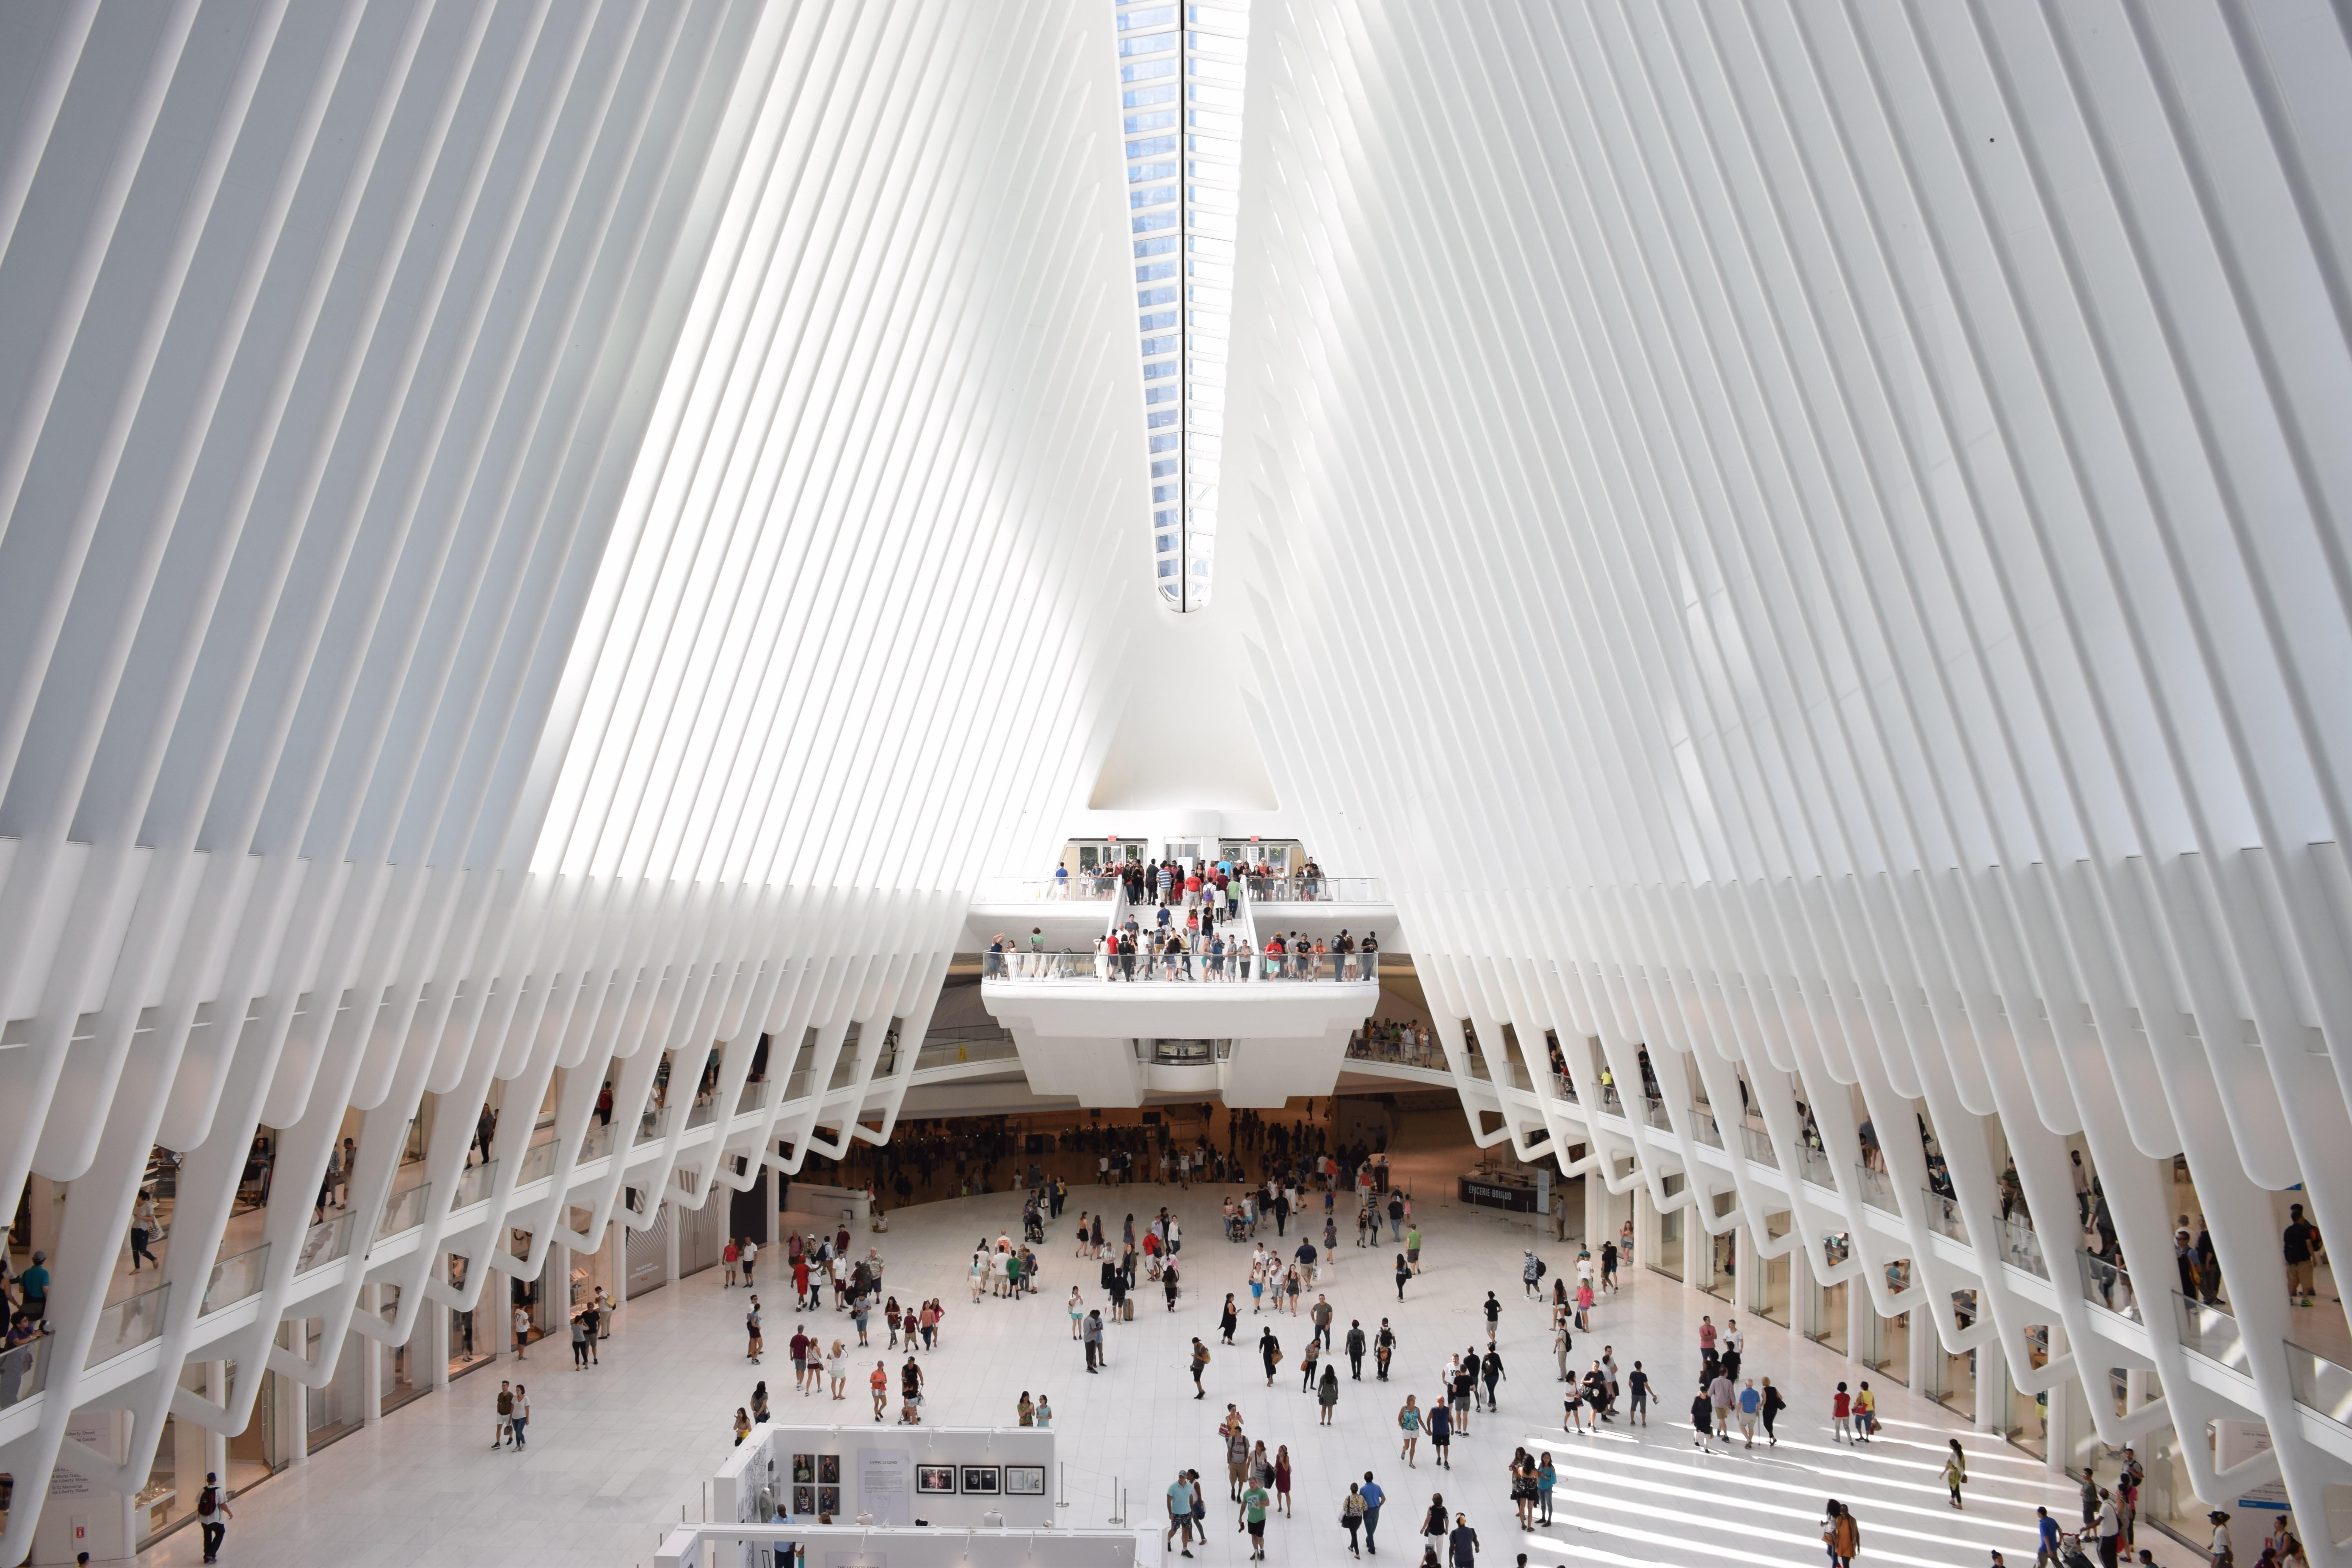 The crowded modern interior of the WTC Transportation Hub in New York City